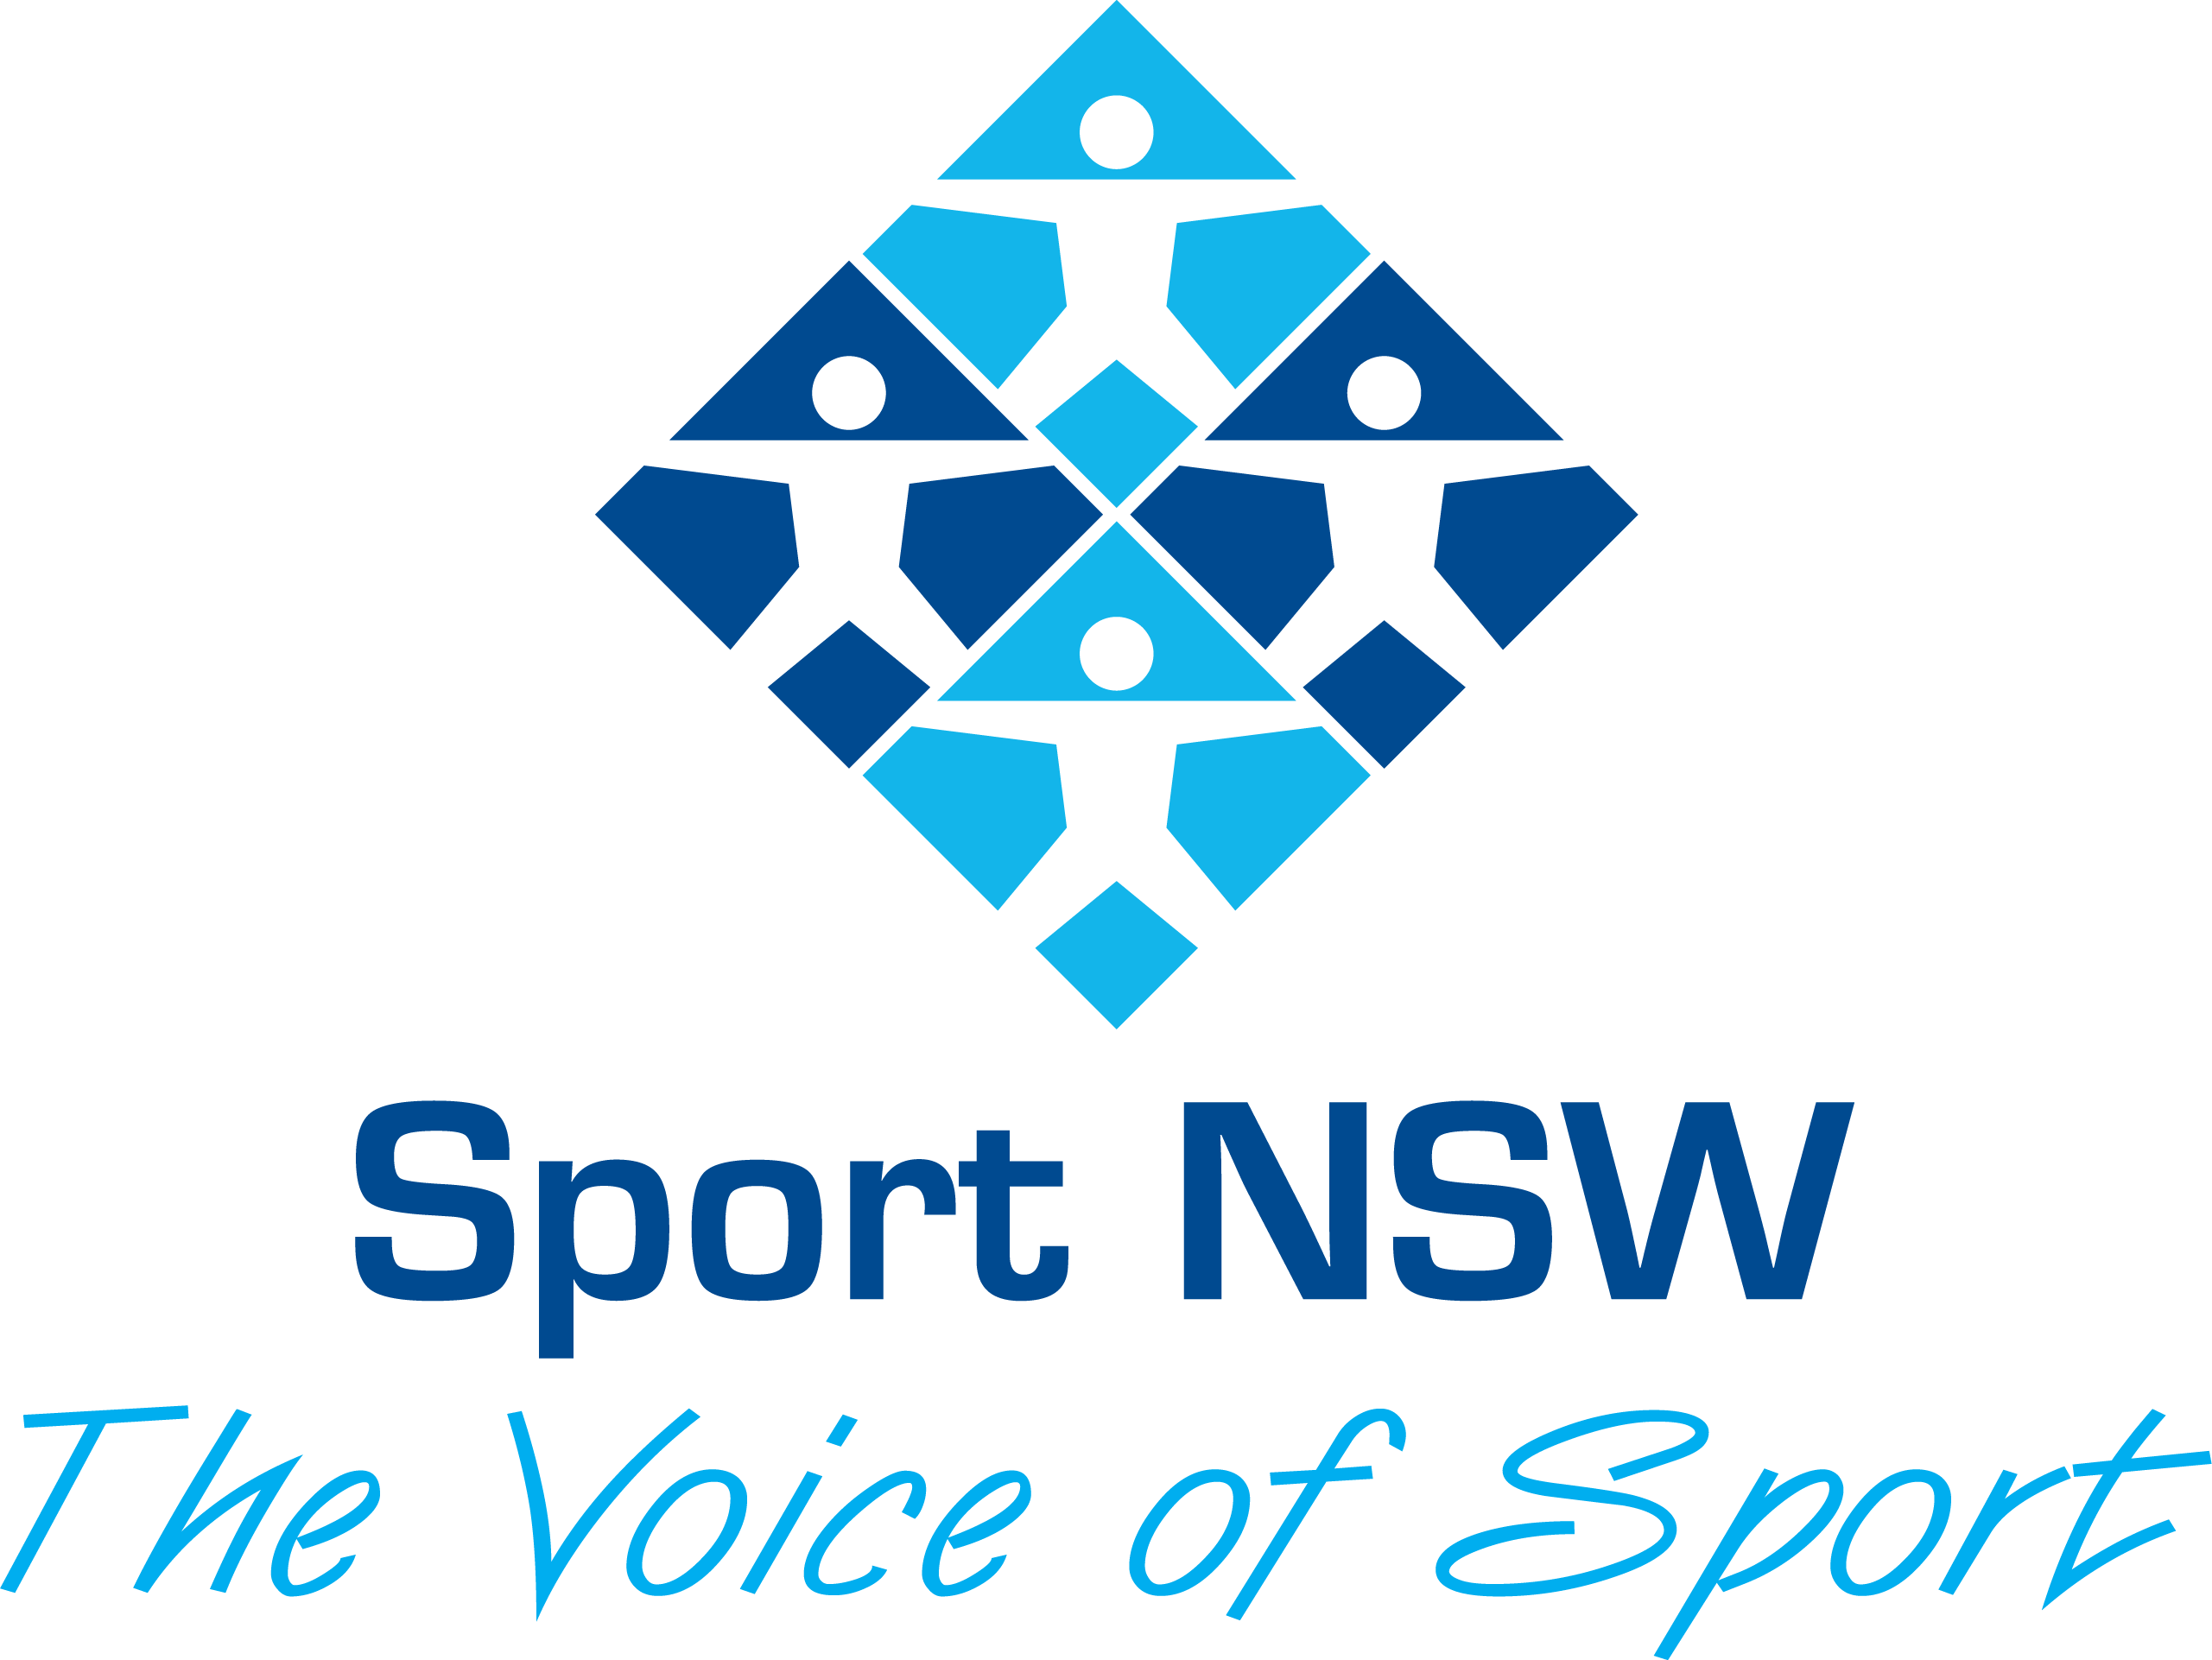 Sport NSW logo, a diamond made of four smaller diamonds of alternating dark and light blue backgrounds on which a white figure stands with arms and legs apart, below the shape is the tagline The Voice of Sport